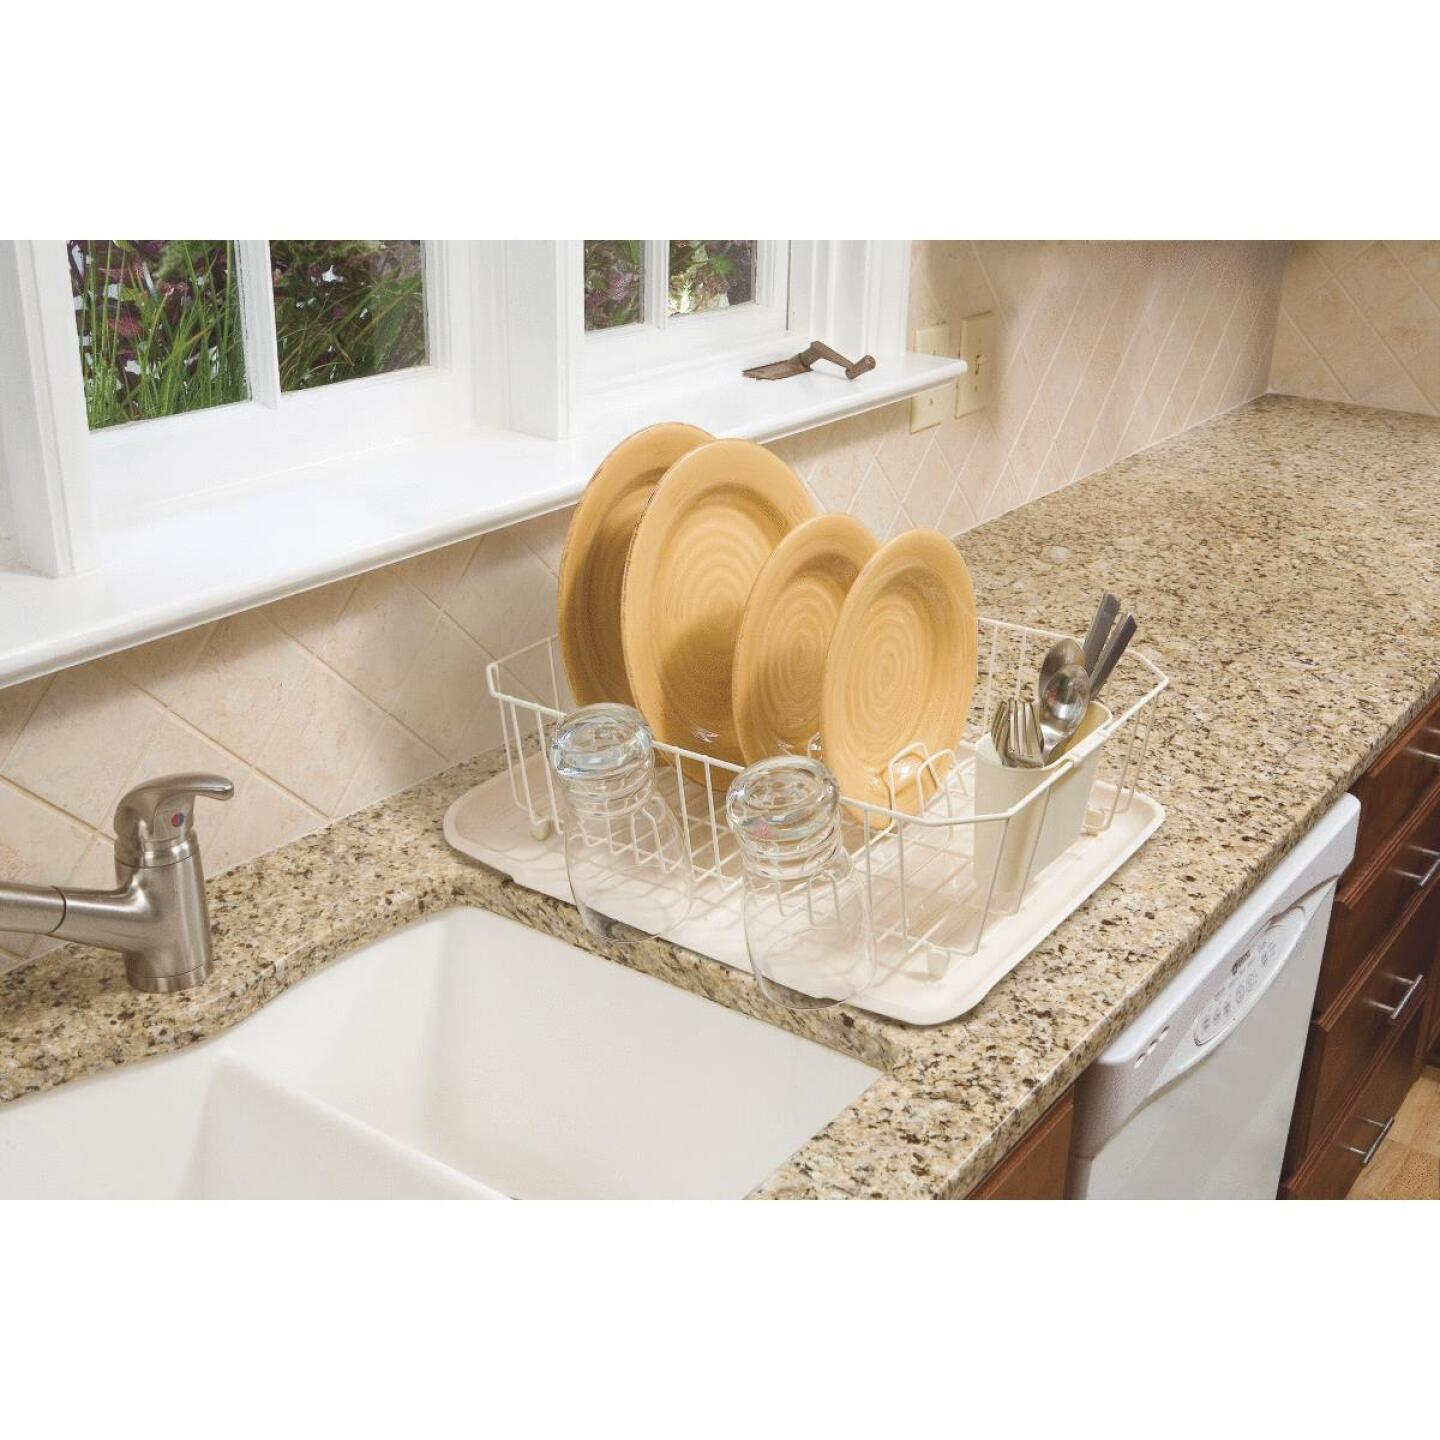 Rubbermaid 13.81 In. x 17.62 In. Bisque Wire Sink Dish Drainer Image 3